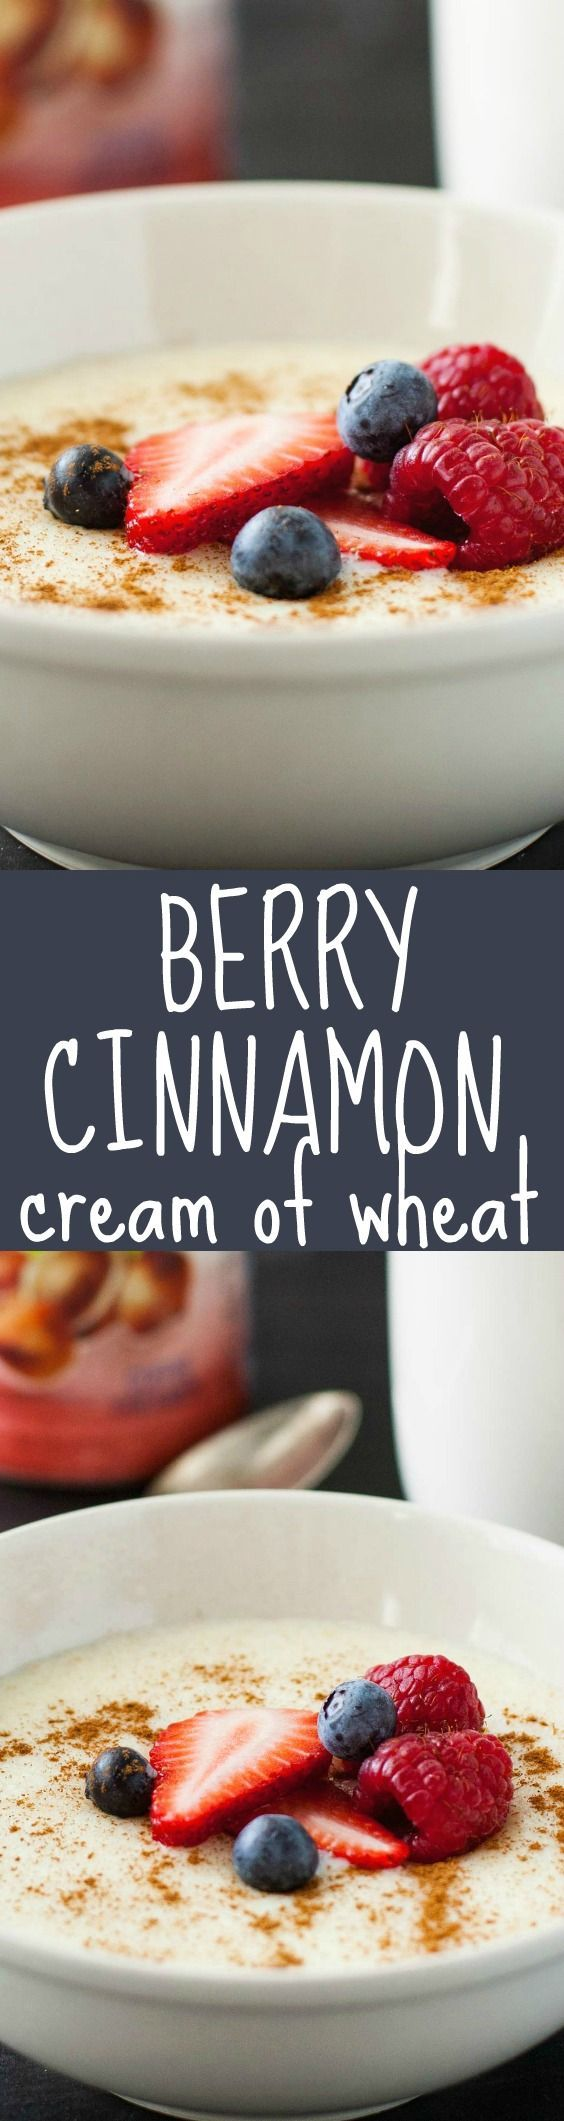 Warm and comforting Berry Cinnamon Cream of Wheat. #IDSimplyPure ad | strawmarysmith.com